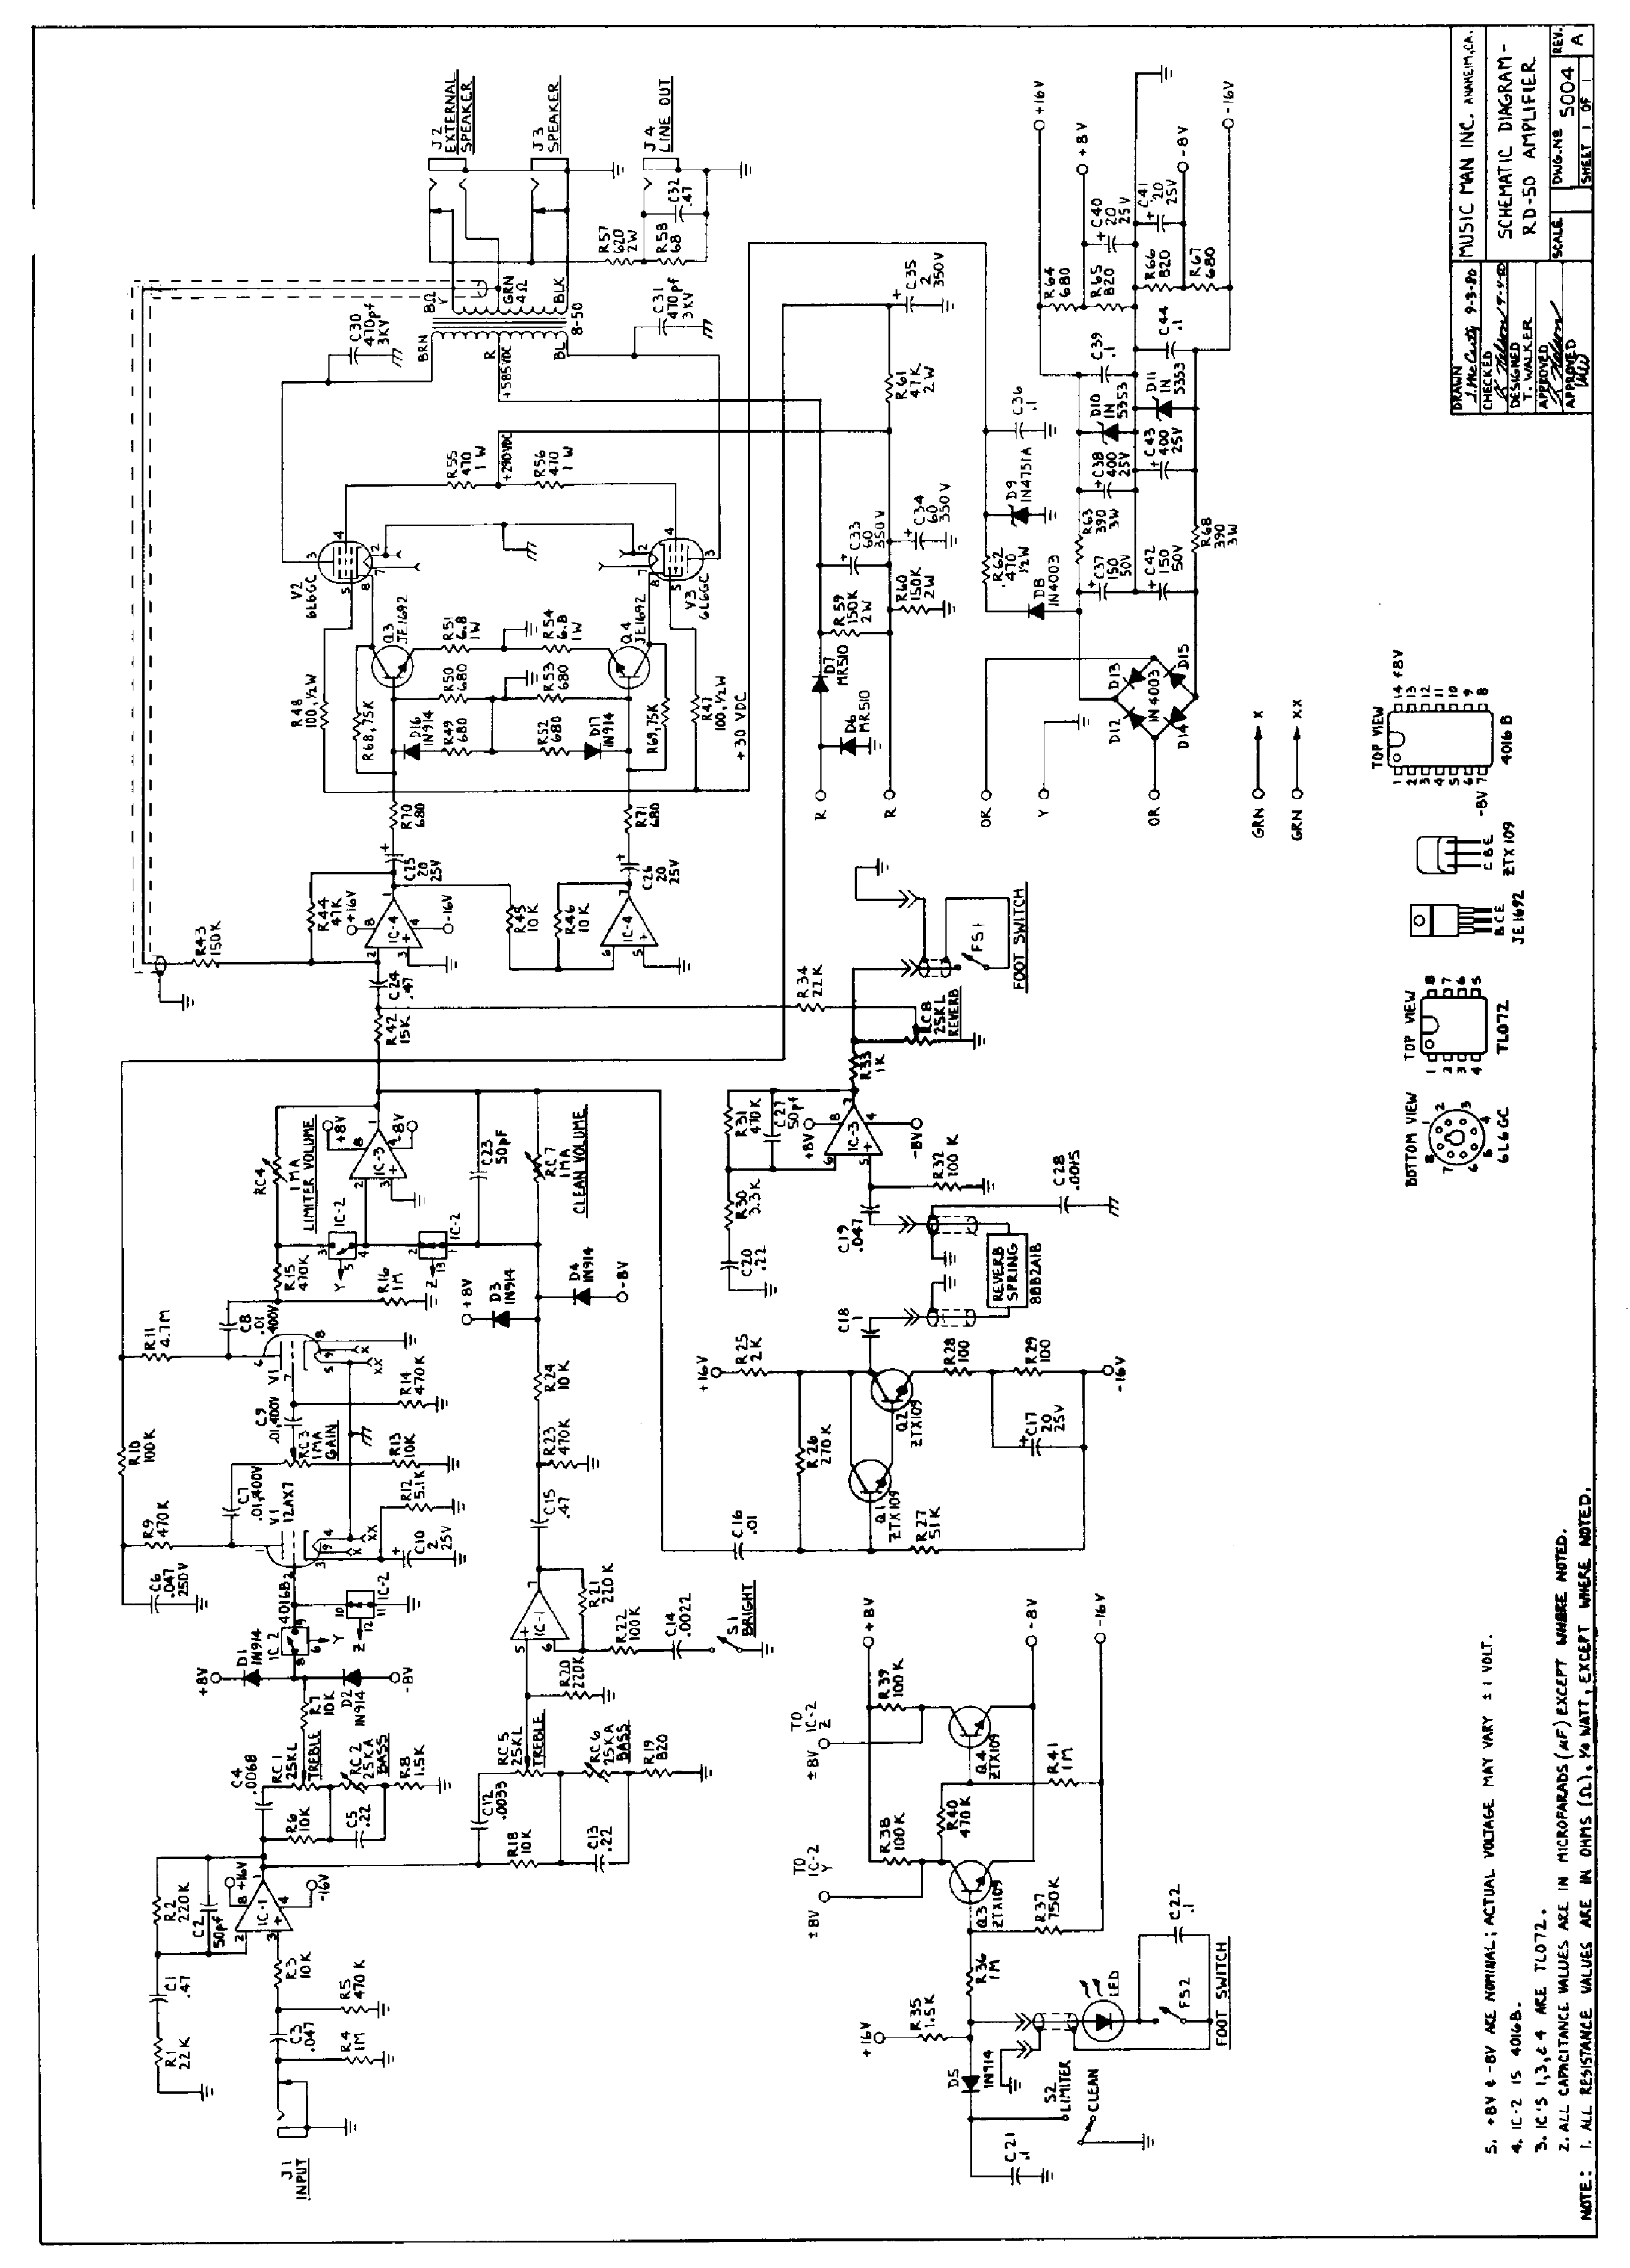 hight resolution of schematic diagram of boss bf 2 flanger pedal fx circuits guitar pedals electronics audio amplifier